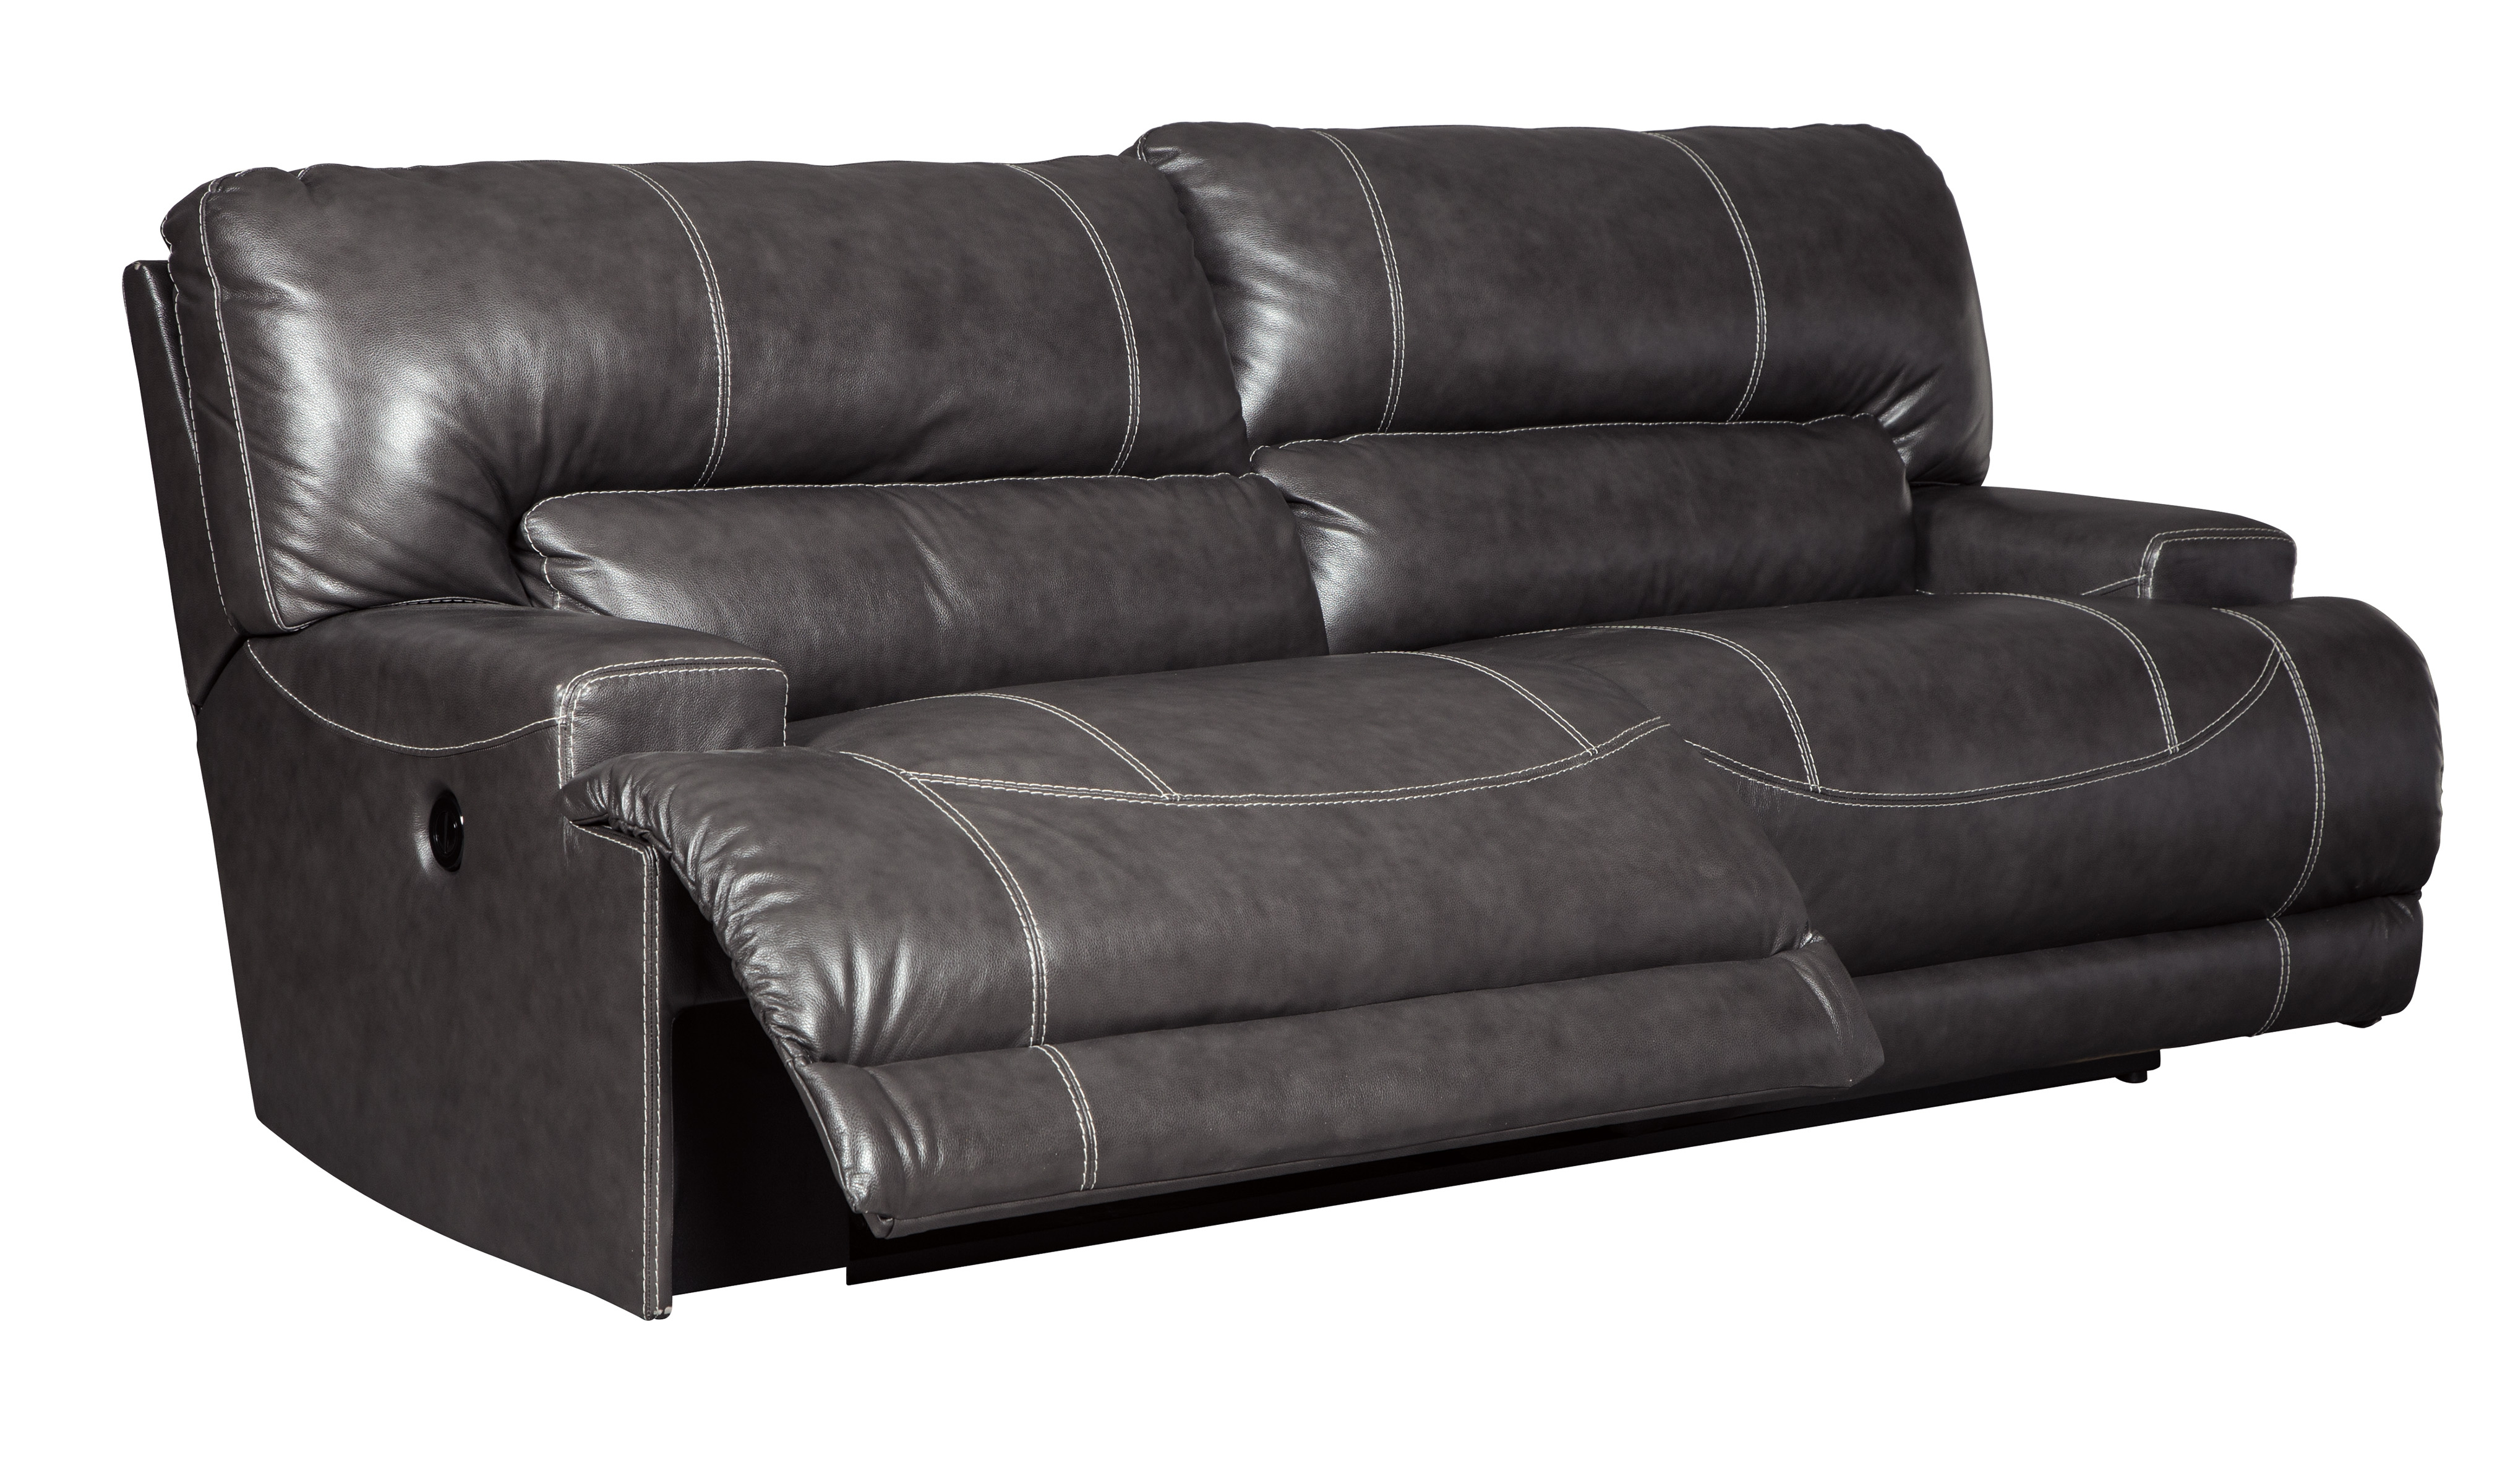 McCaskill Contemporary Gray Leather 2 Seat Reclining Sofa Click To Enlarge ...  sc 1 st  The Classy Home : 2 seat reclining leather sofa - islam-shia.org